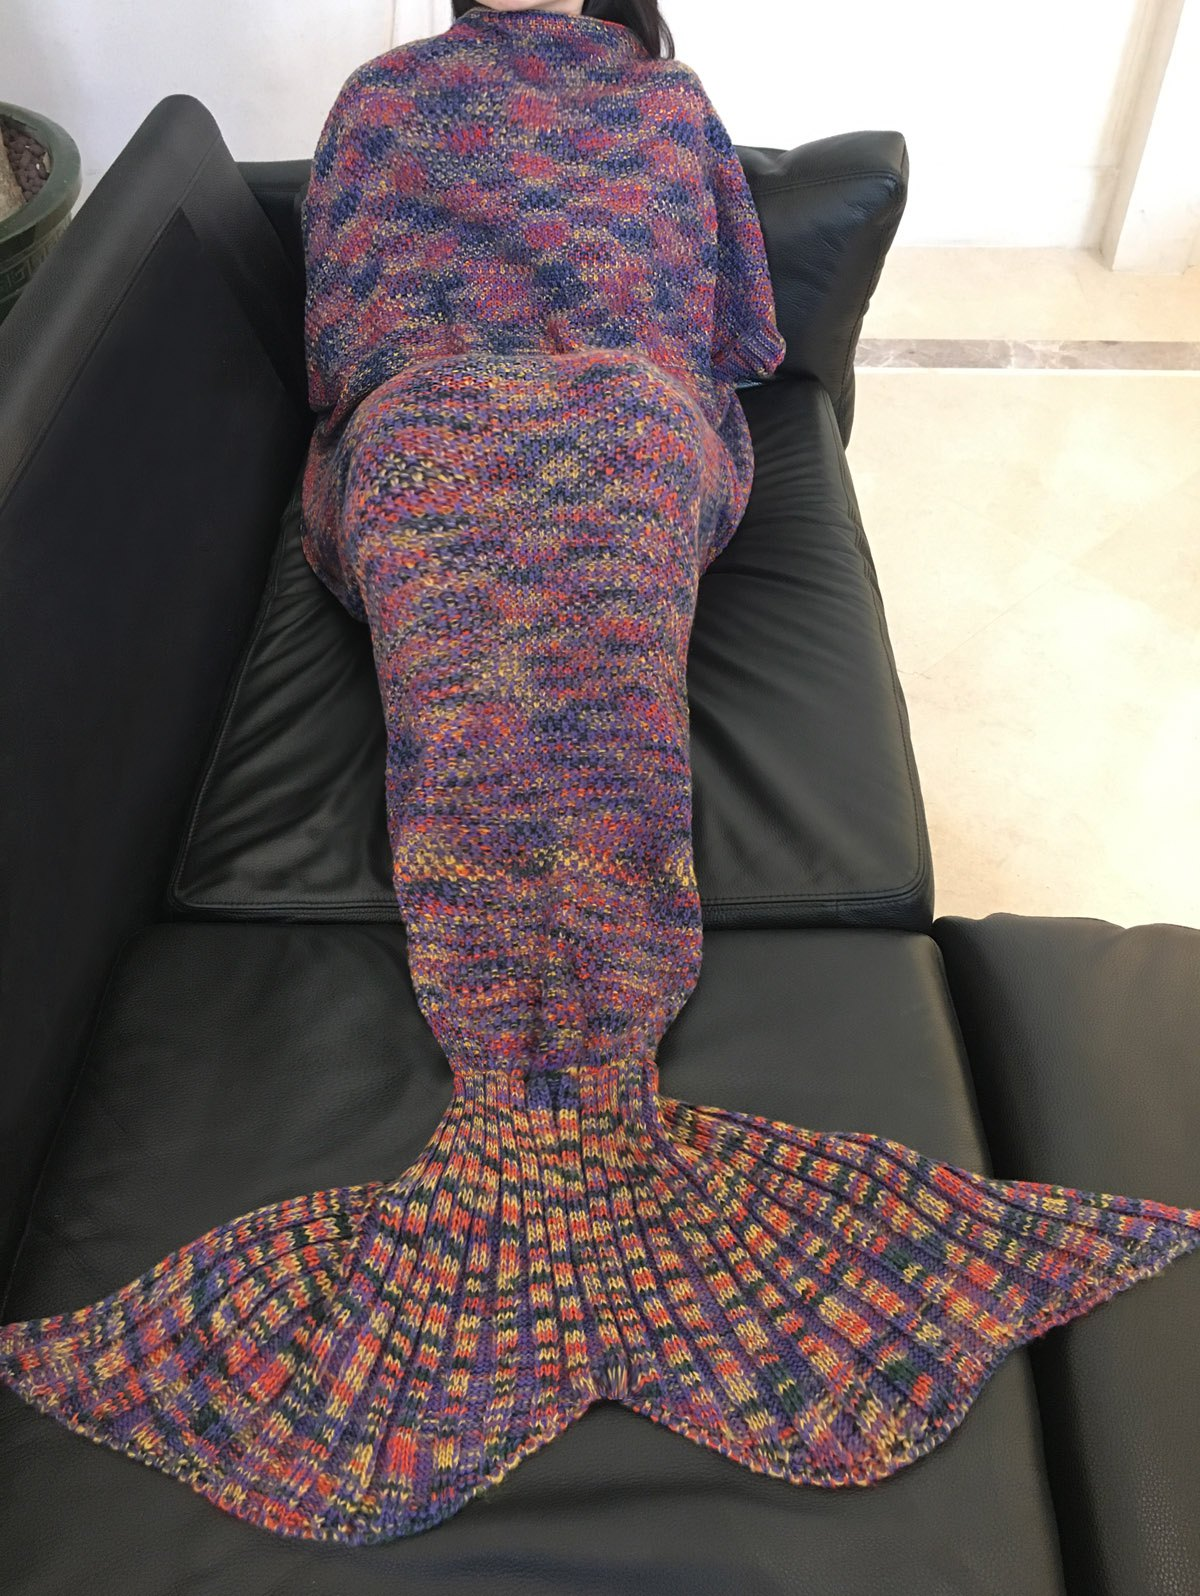 Chic Quality Colorful Printed Warmth Wool Knitted Mermaid Tail Design Blanket - PURPLE